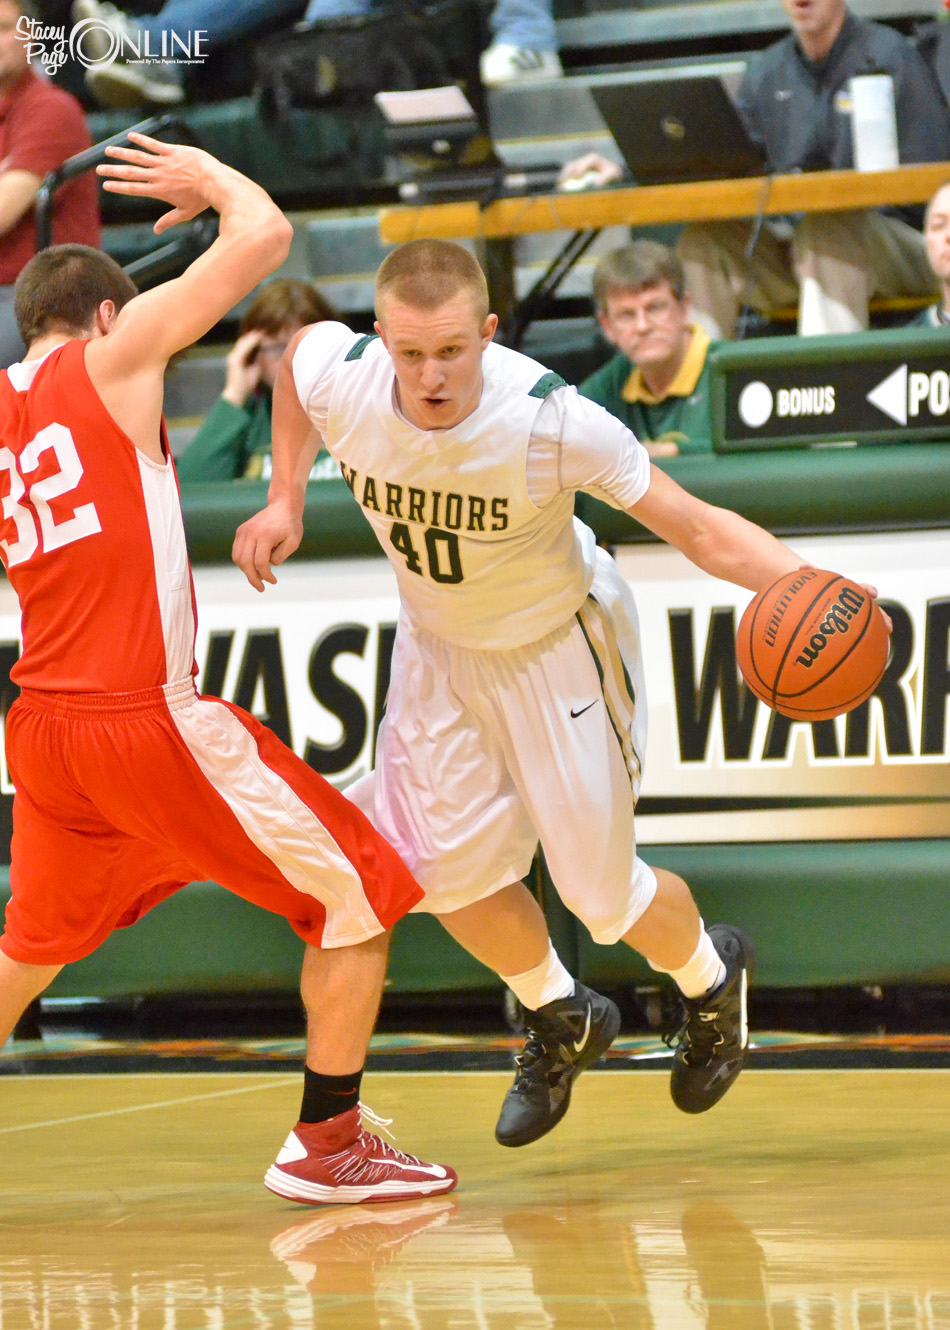 Wawasee's Alex Clark dribbles around Plymouth's Kyser McCrammer Friday night. The game was overshadowed by the news Wawasee student KC Ochs had committed suicide earlier in the day, sombering the atmosphere surrounding the contest.